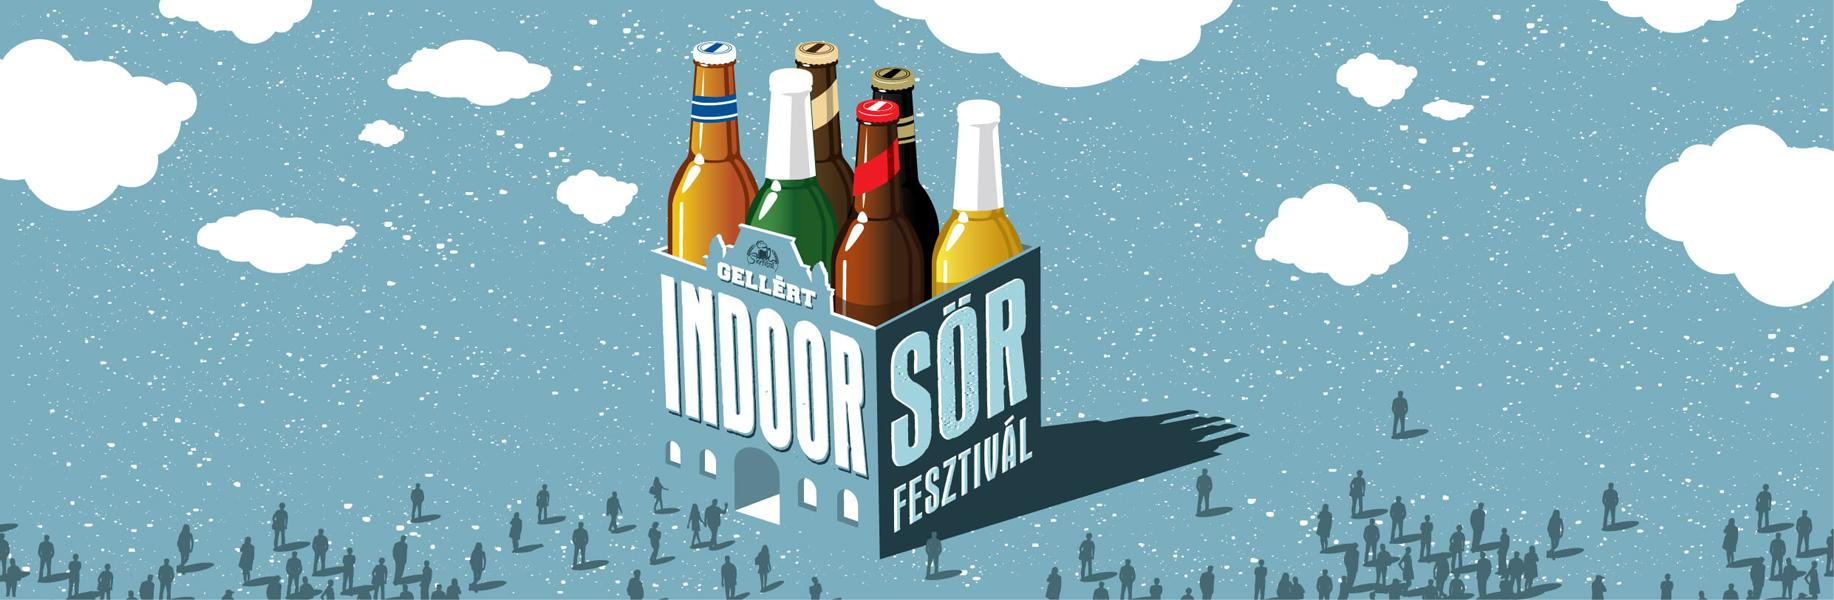 First Winter Beer Festival In Budapest, 19 - 21 February